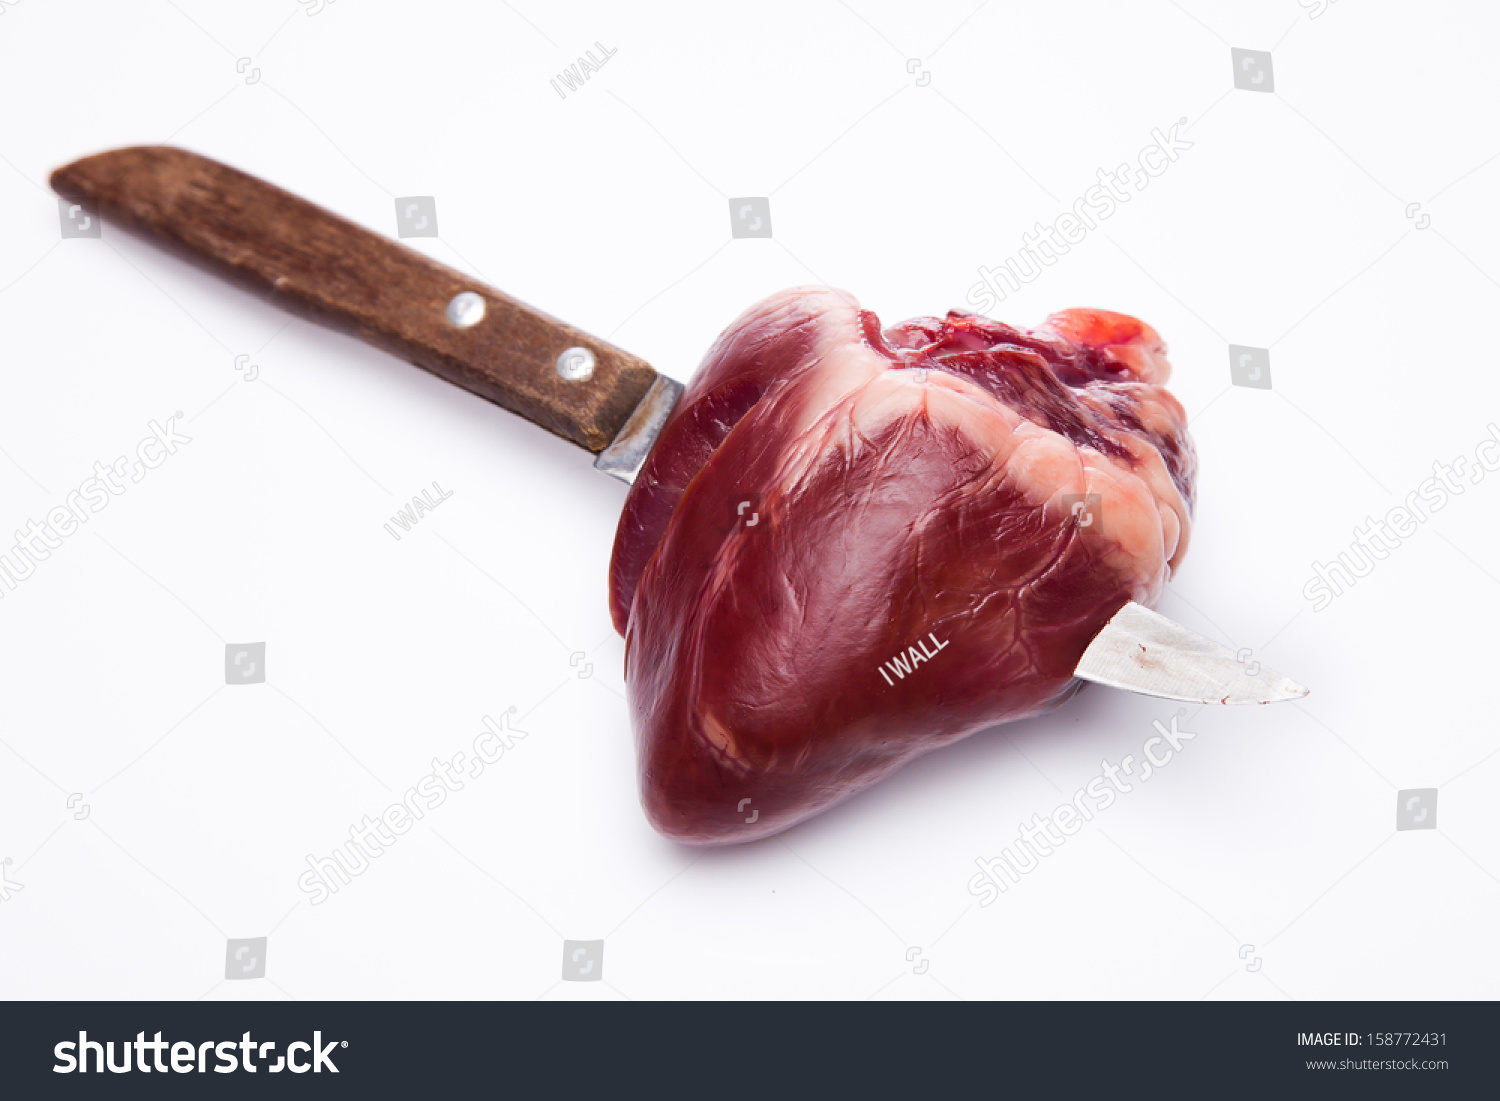 Realistic Knife In The Heart Drawing: Knife Through My Heart Stock Photo 158772431 : Shutterstock